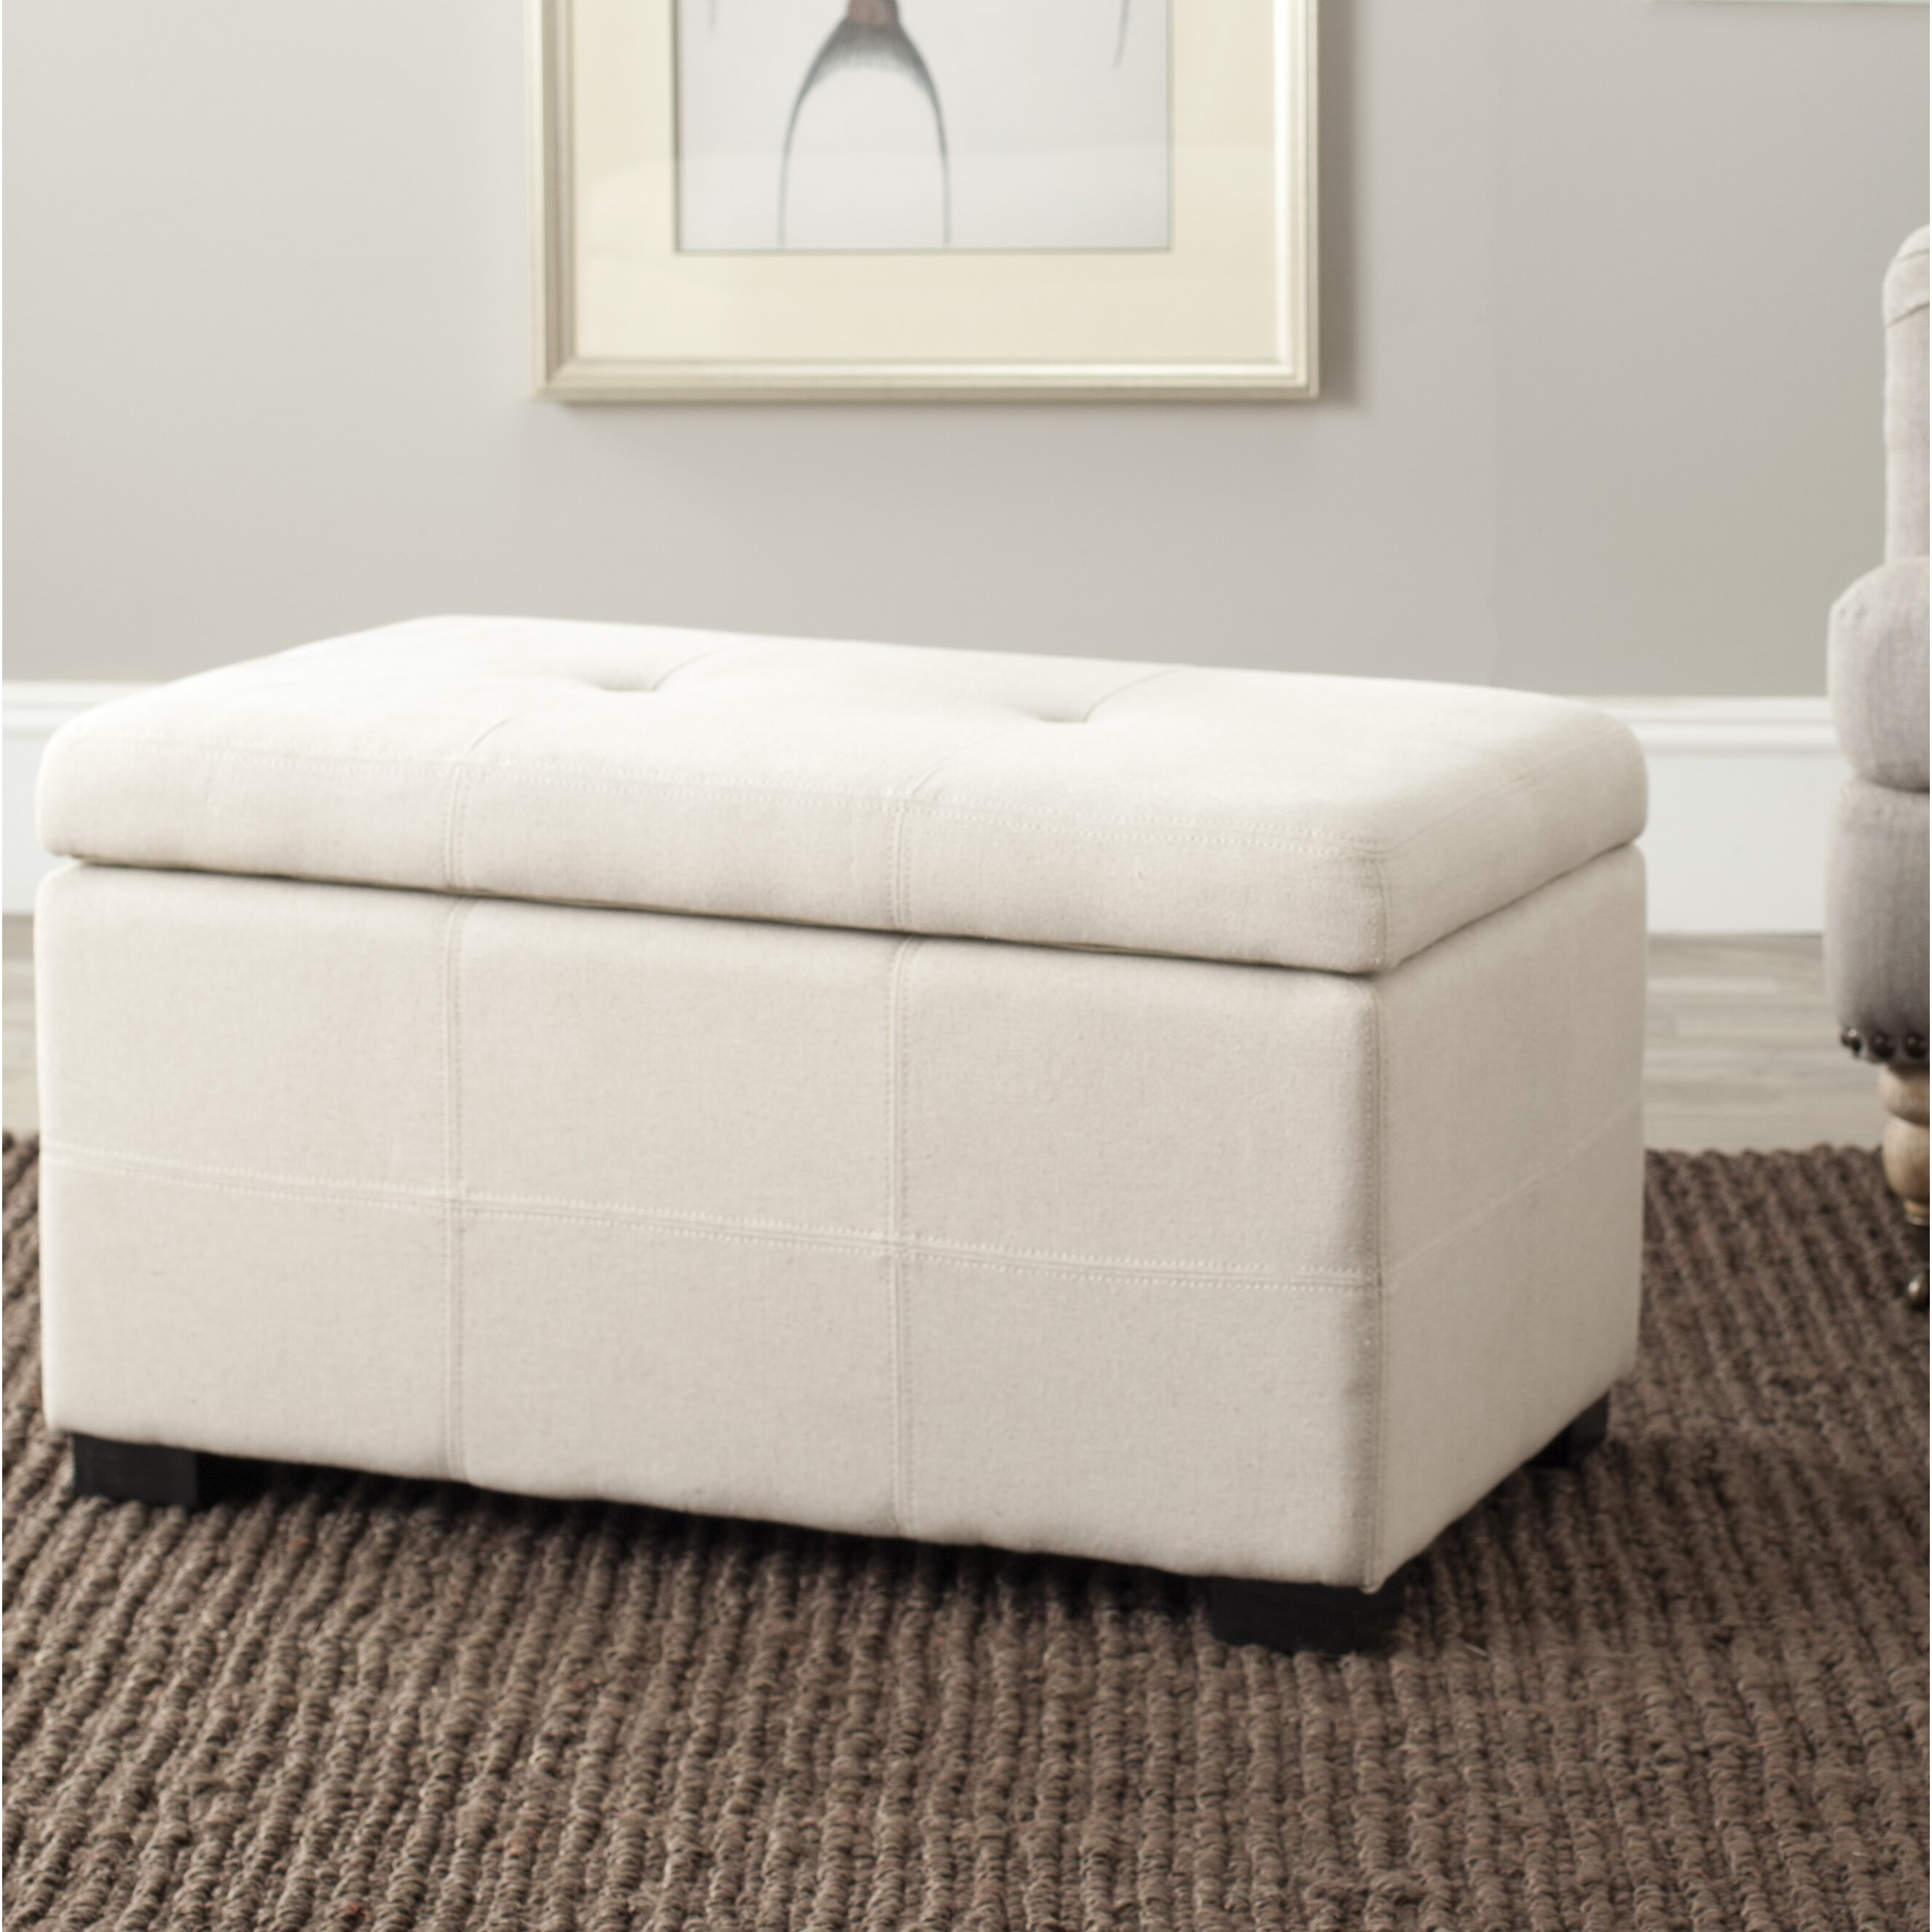 Mercury row tufted beige linen storage bedroom bench reviews wayfair Bedroom storage bench